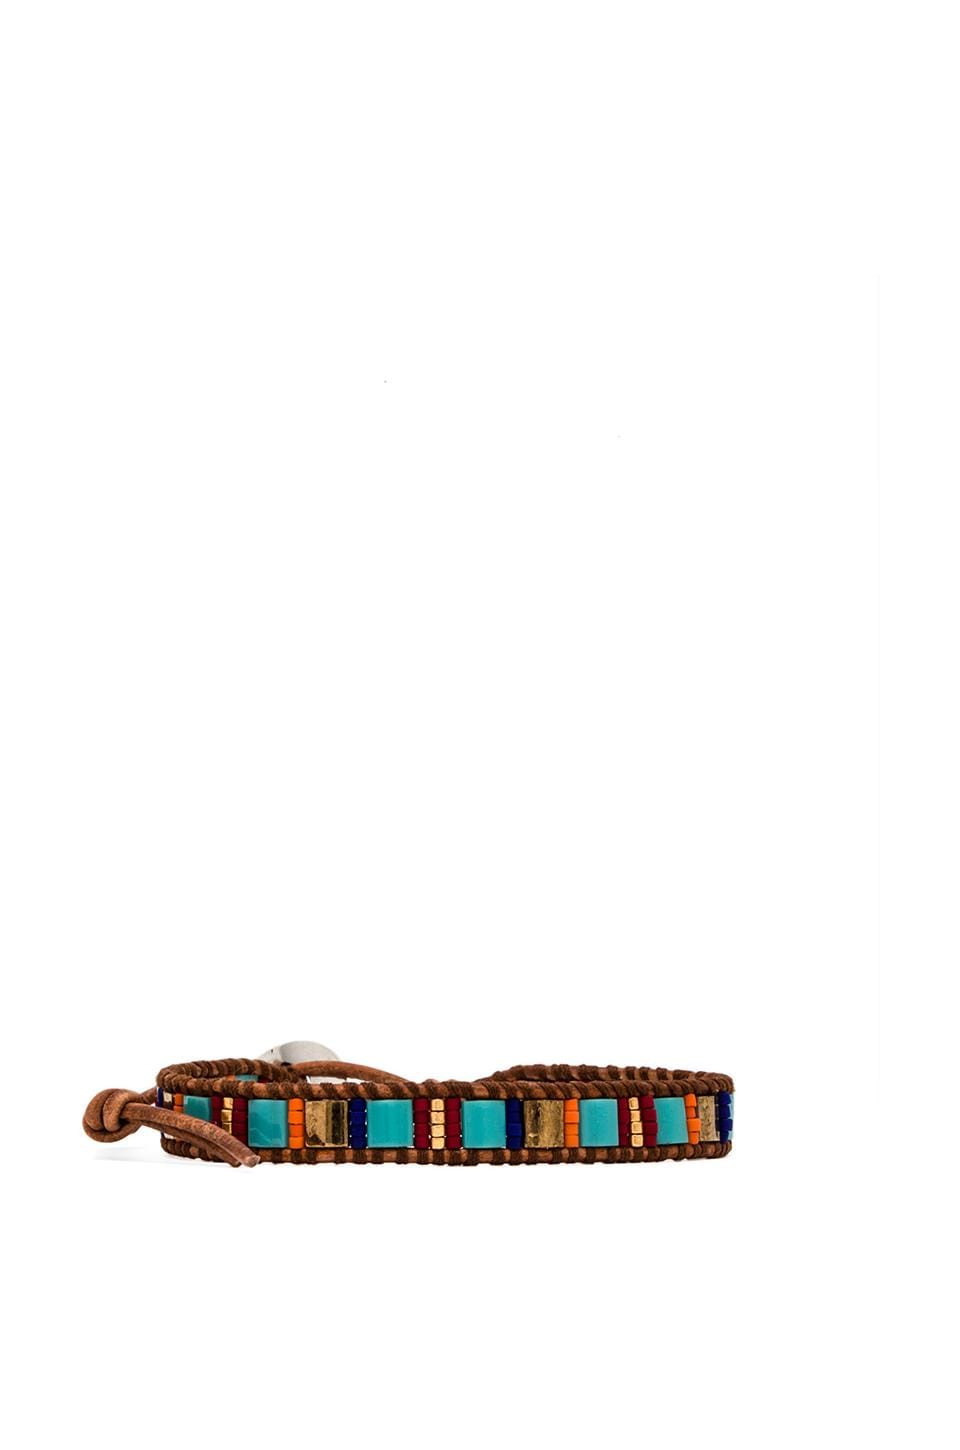 CHAN LUU Thin Beaded Bracelet in Turquoise Mix & Natural Brown